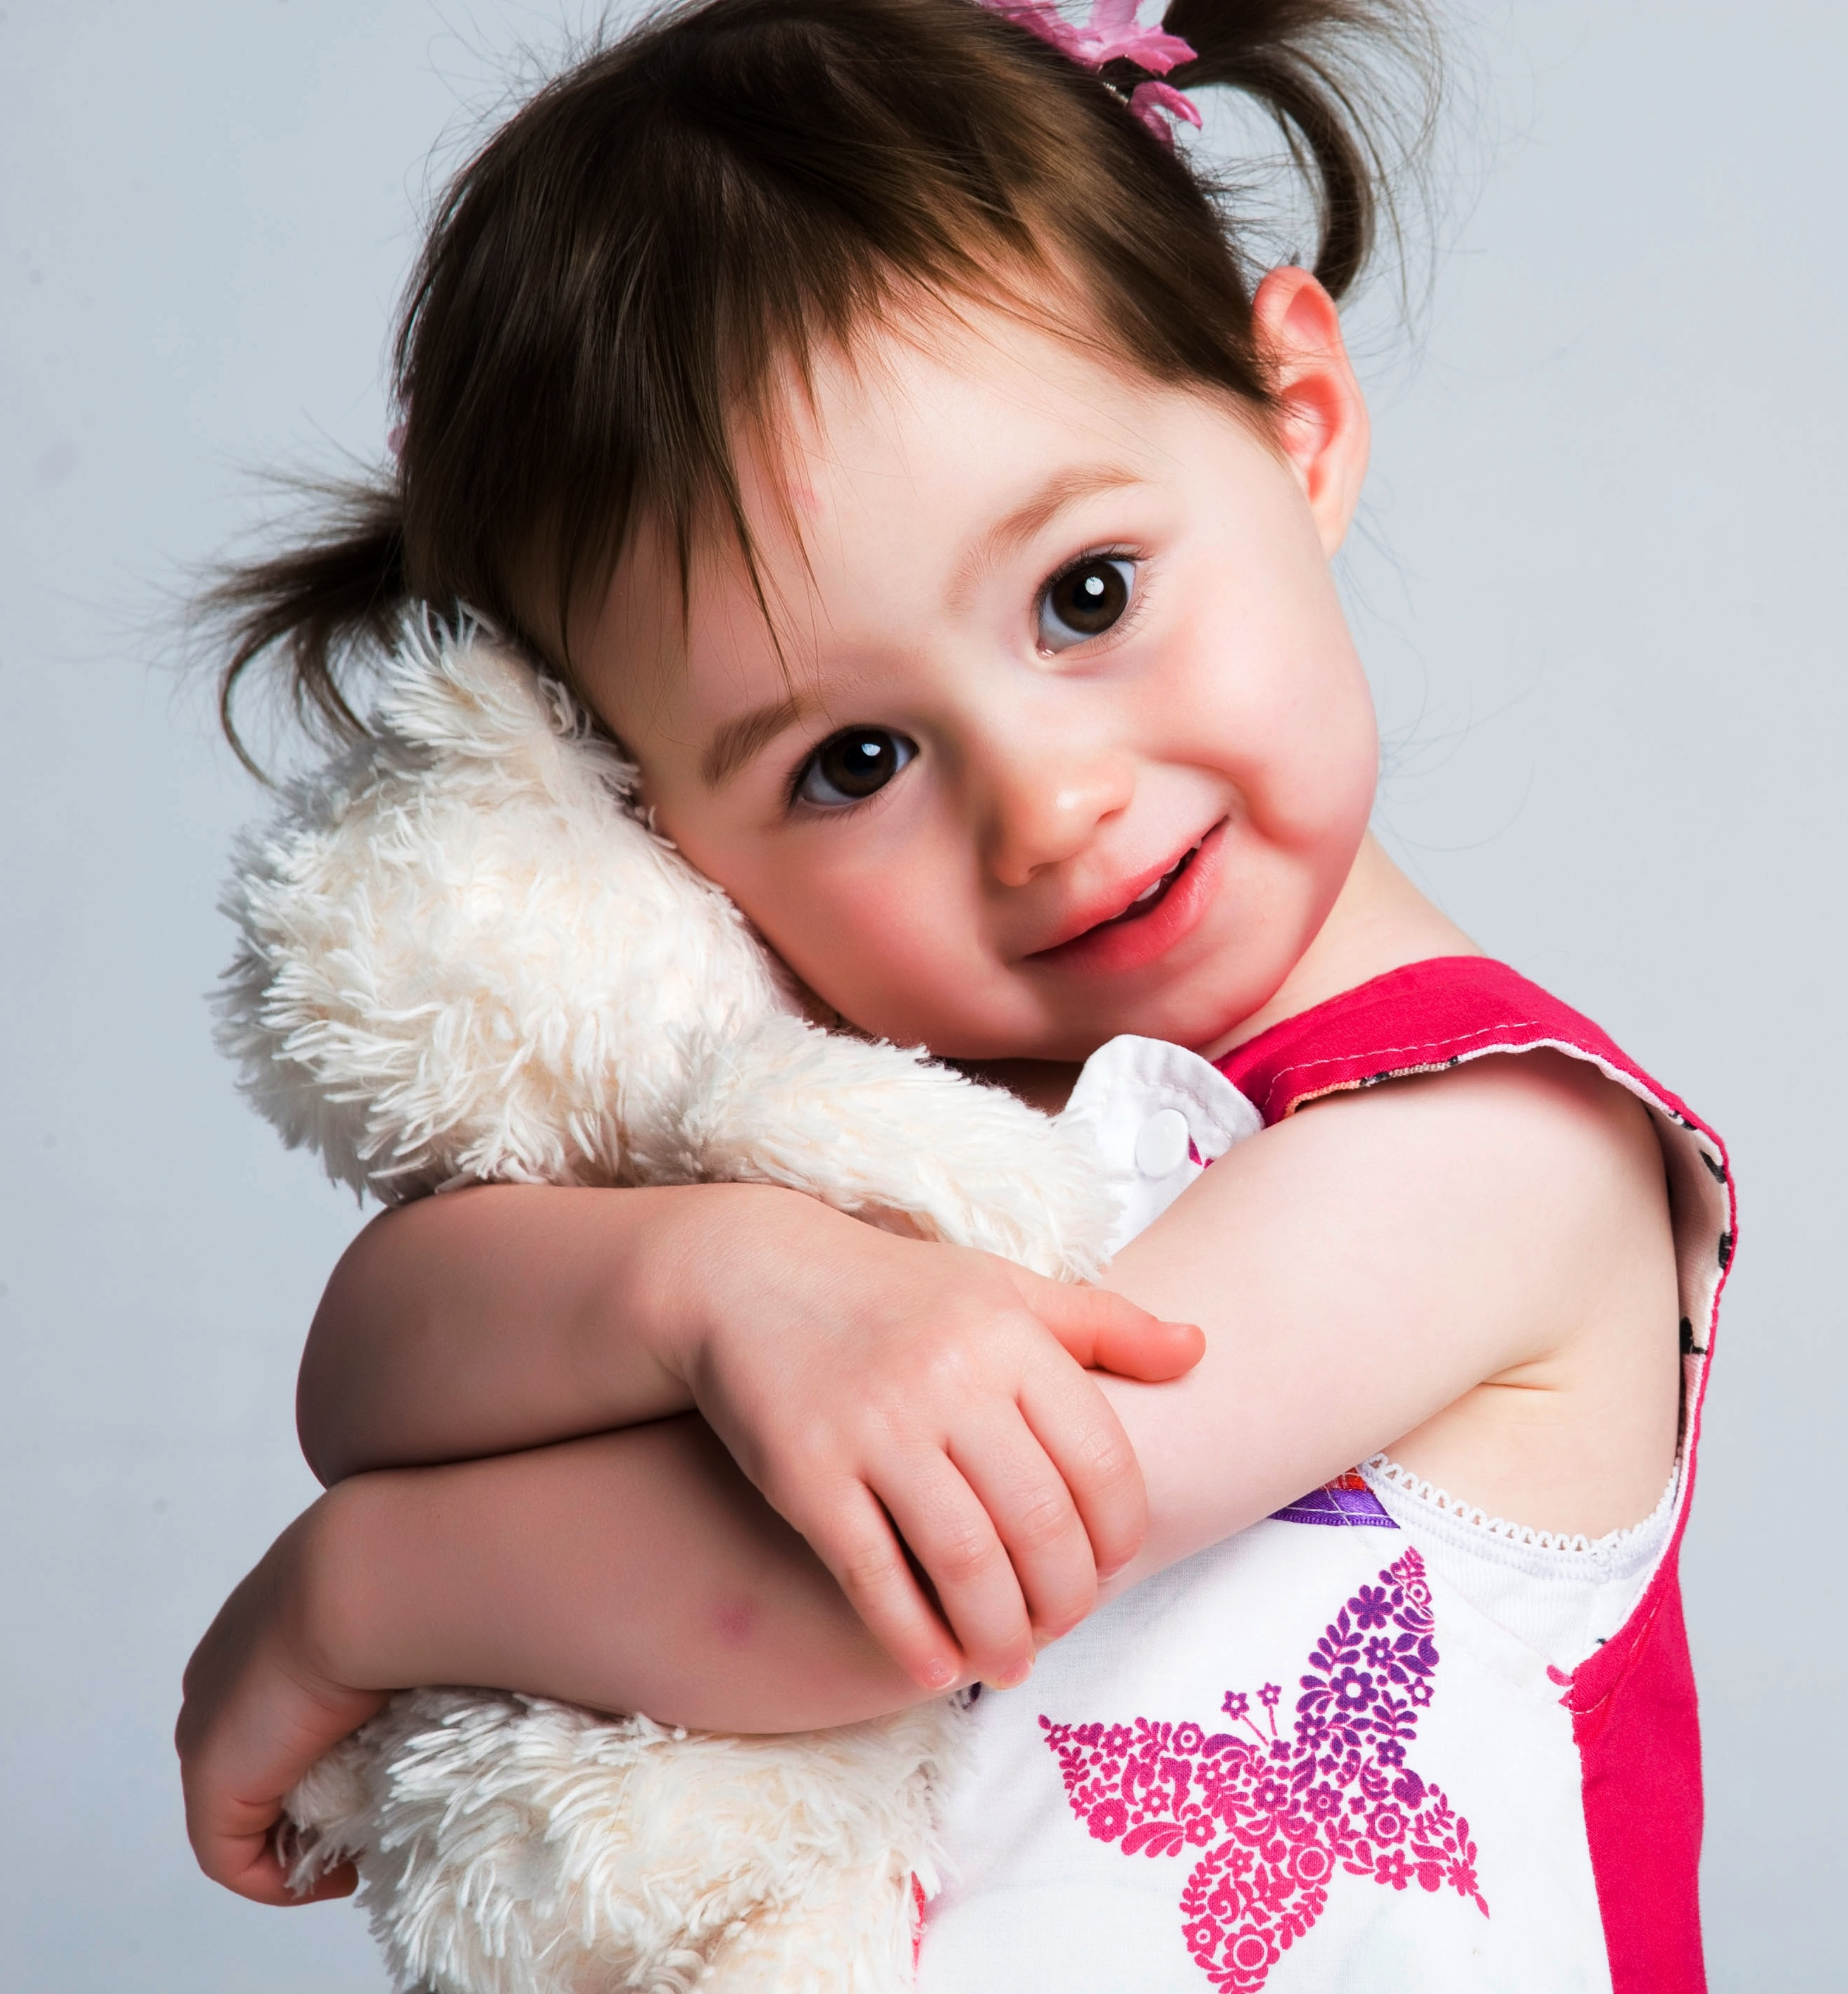 Cute Wallpapers For Girls 7 Year Old 177 Heartwarming Baby Photos 183 Pexels 183 Free Stock Photos